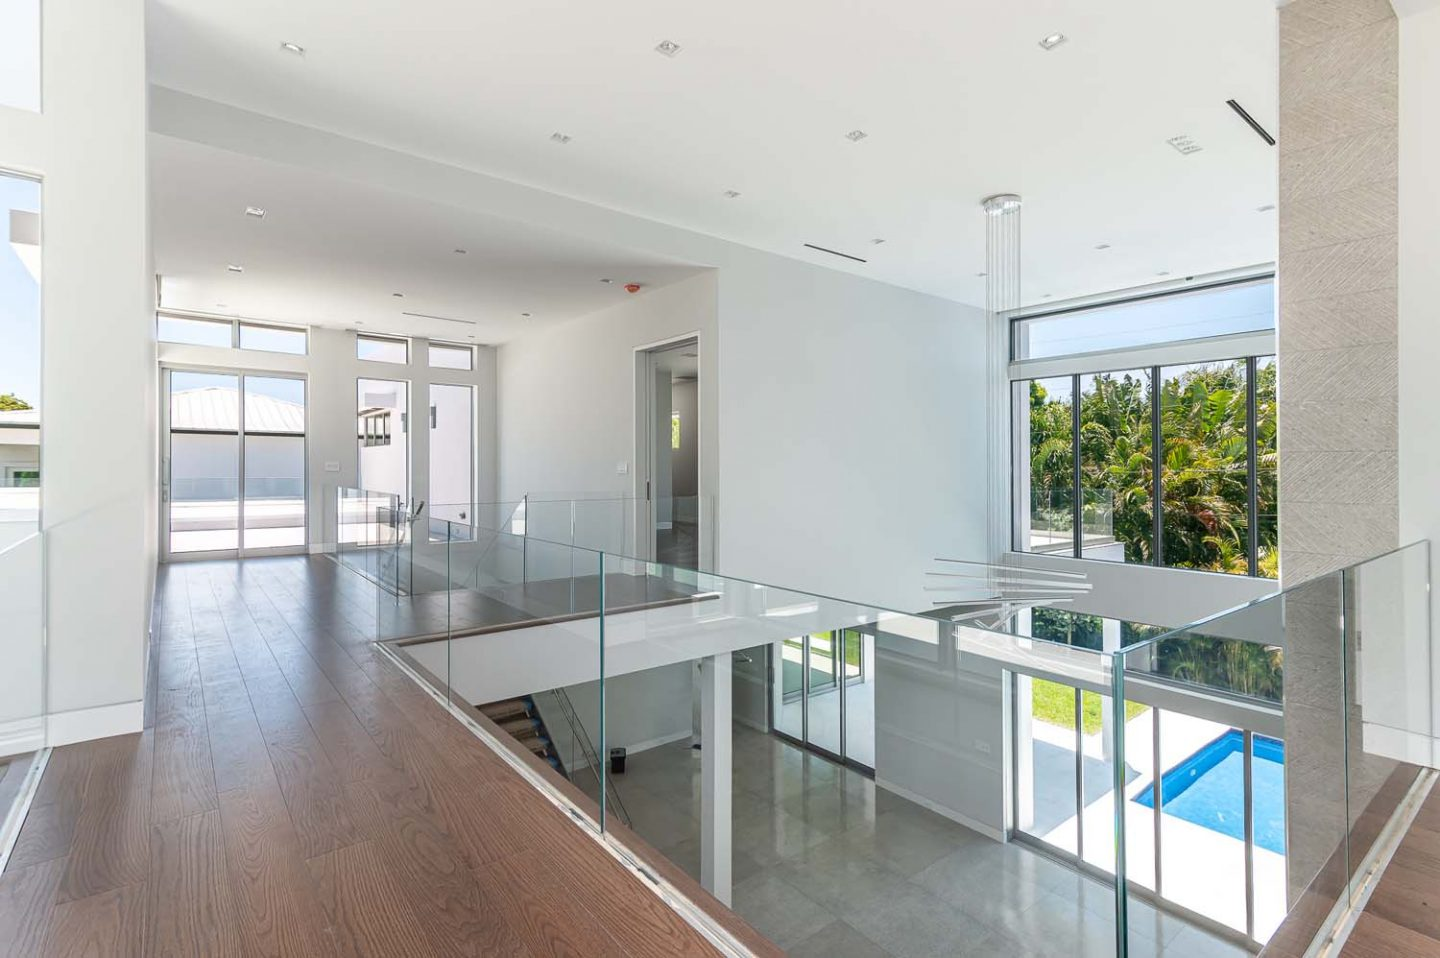 126 Beverly Rd project